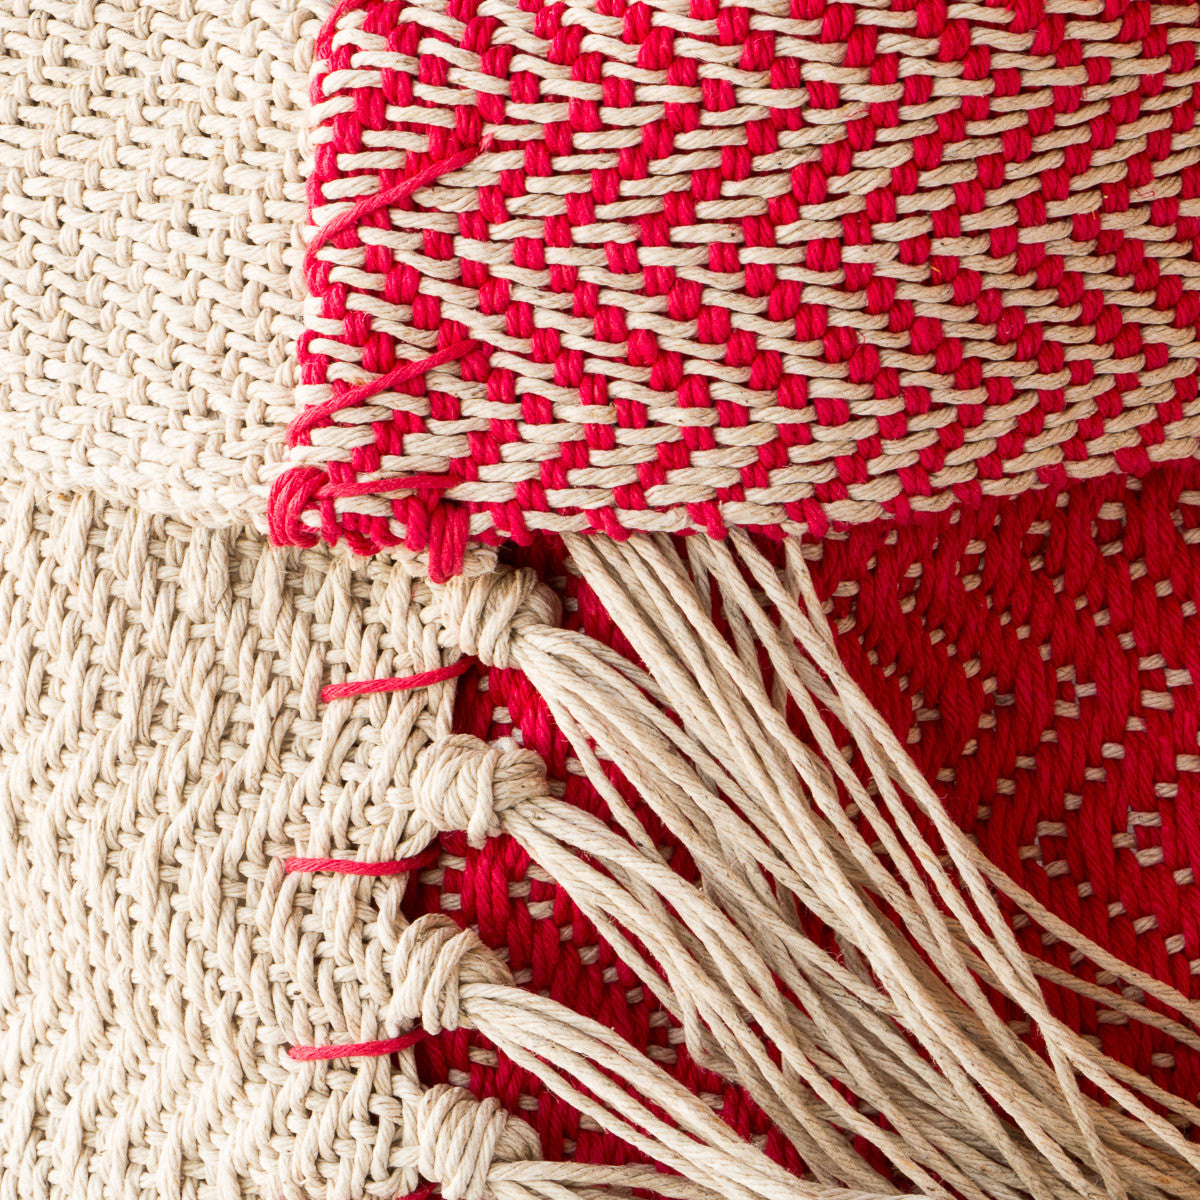 Handwoven Red and Ecru Hemp Pattern - Chic & Basta